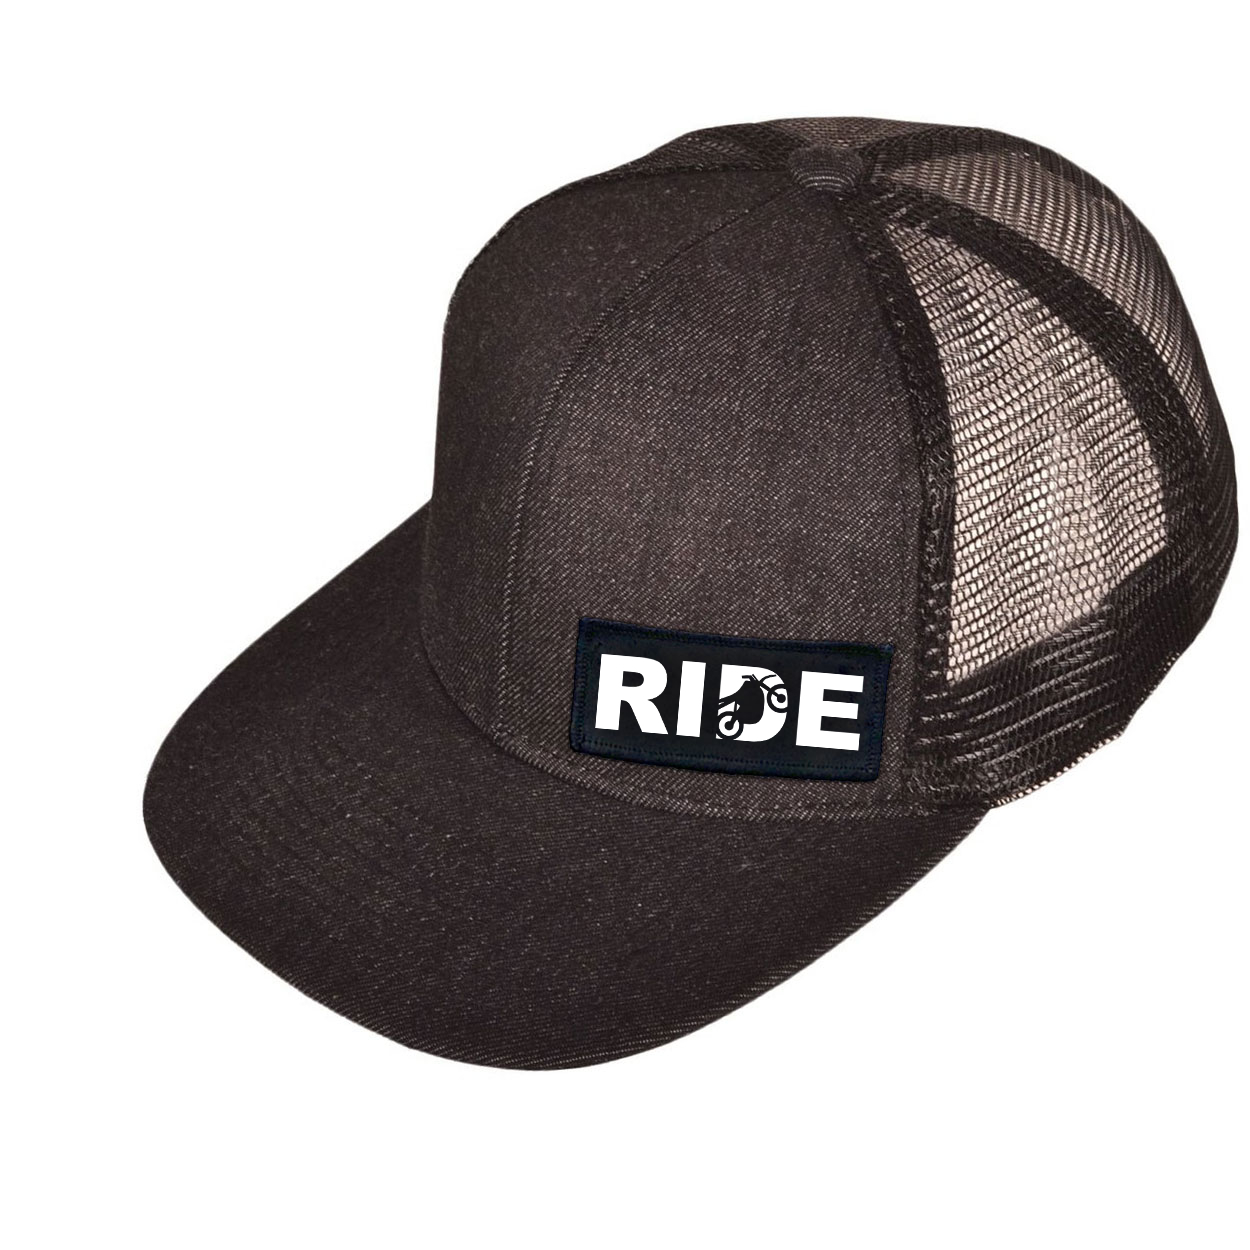 Ride Moto Logo Night Out Woven Patch Snapback Flat Brim Hat Black Denim (White Logo)